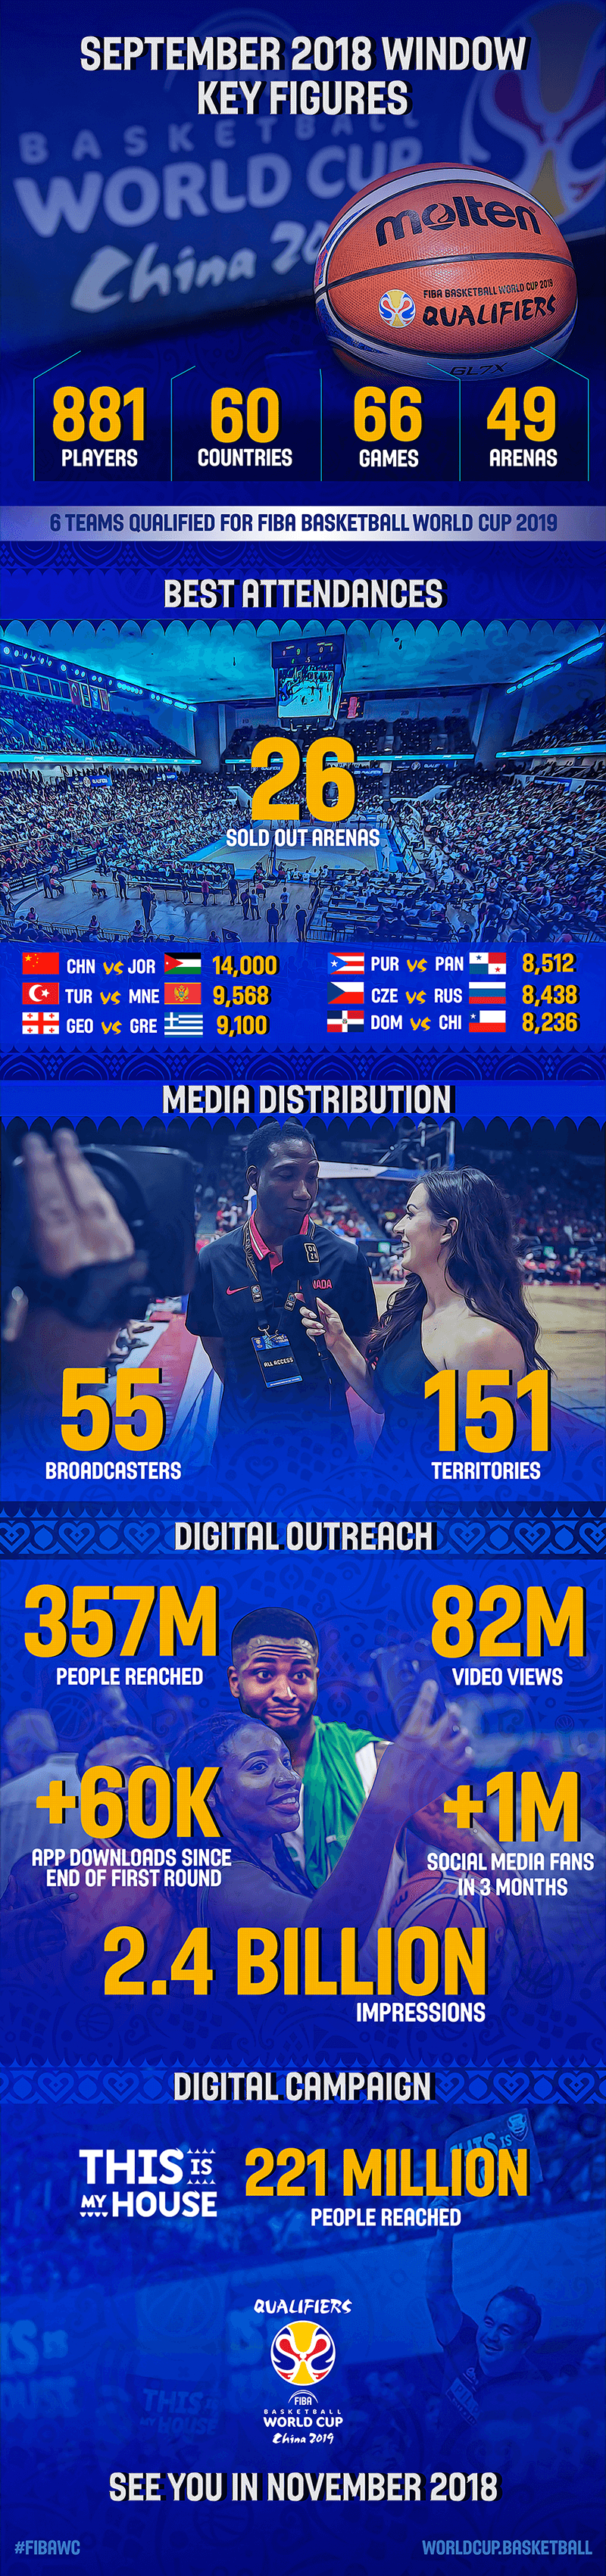 FIBA WC digital september 2018